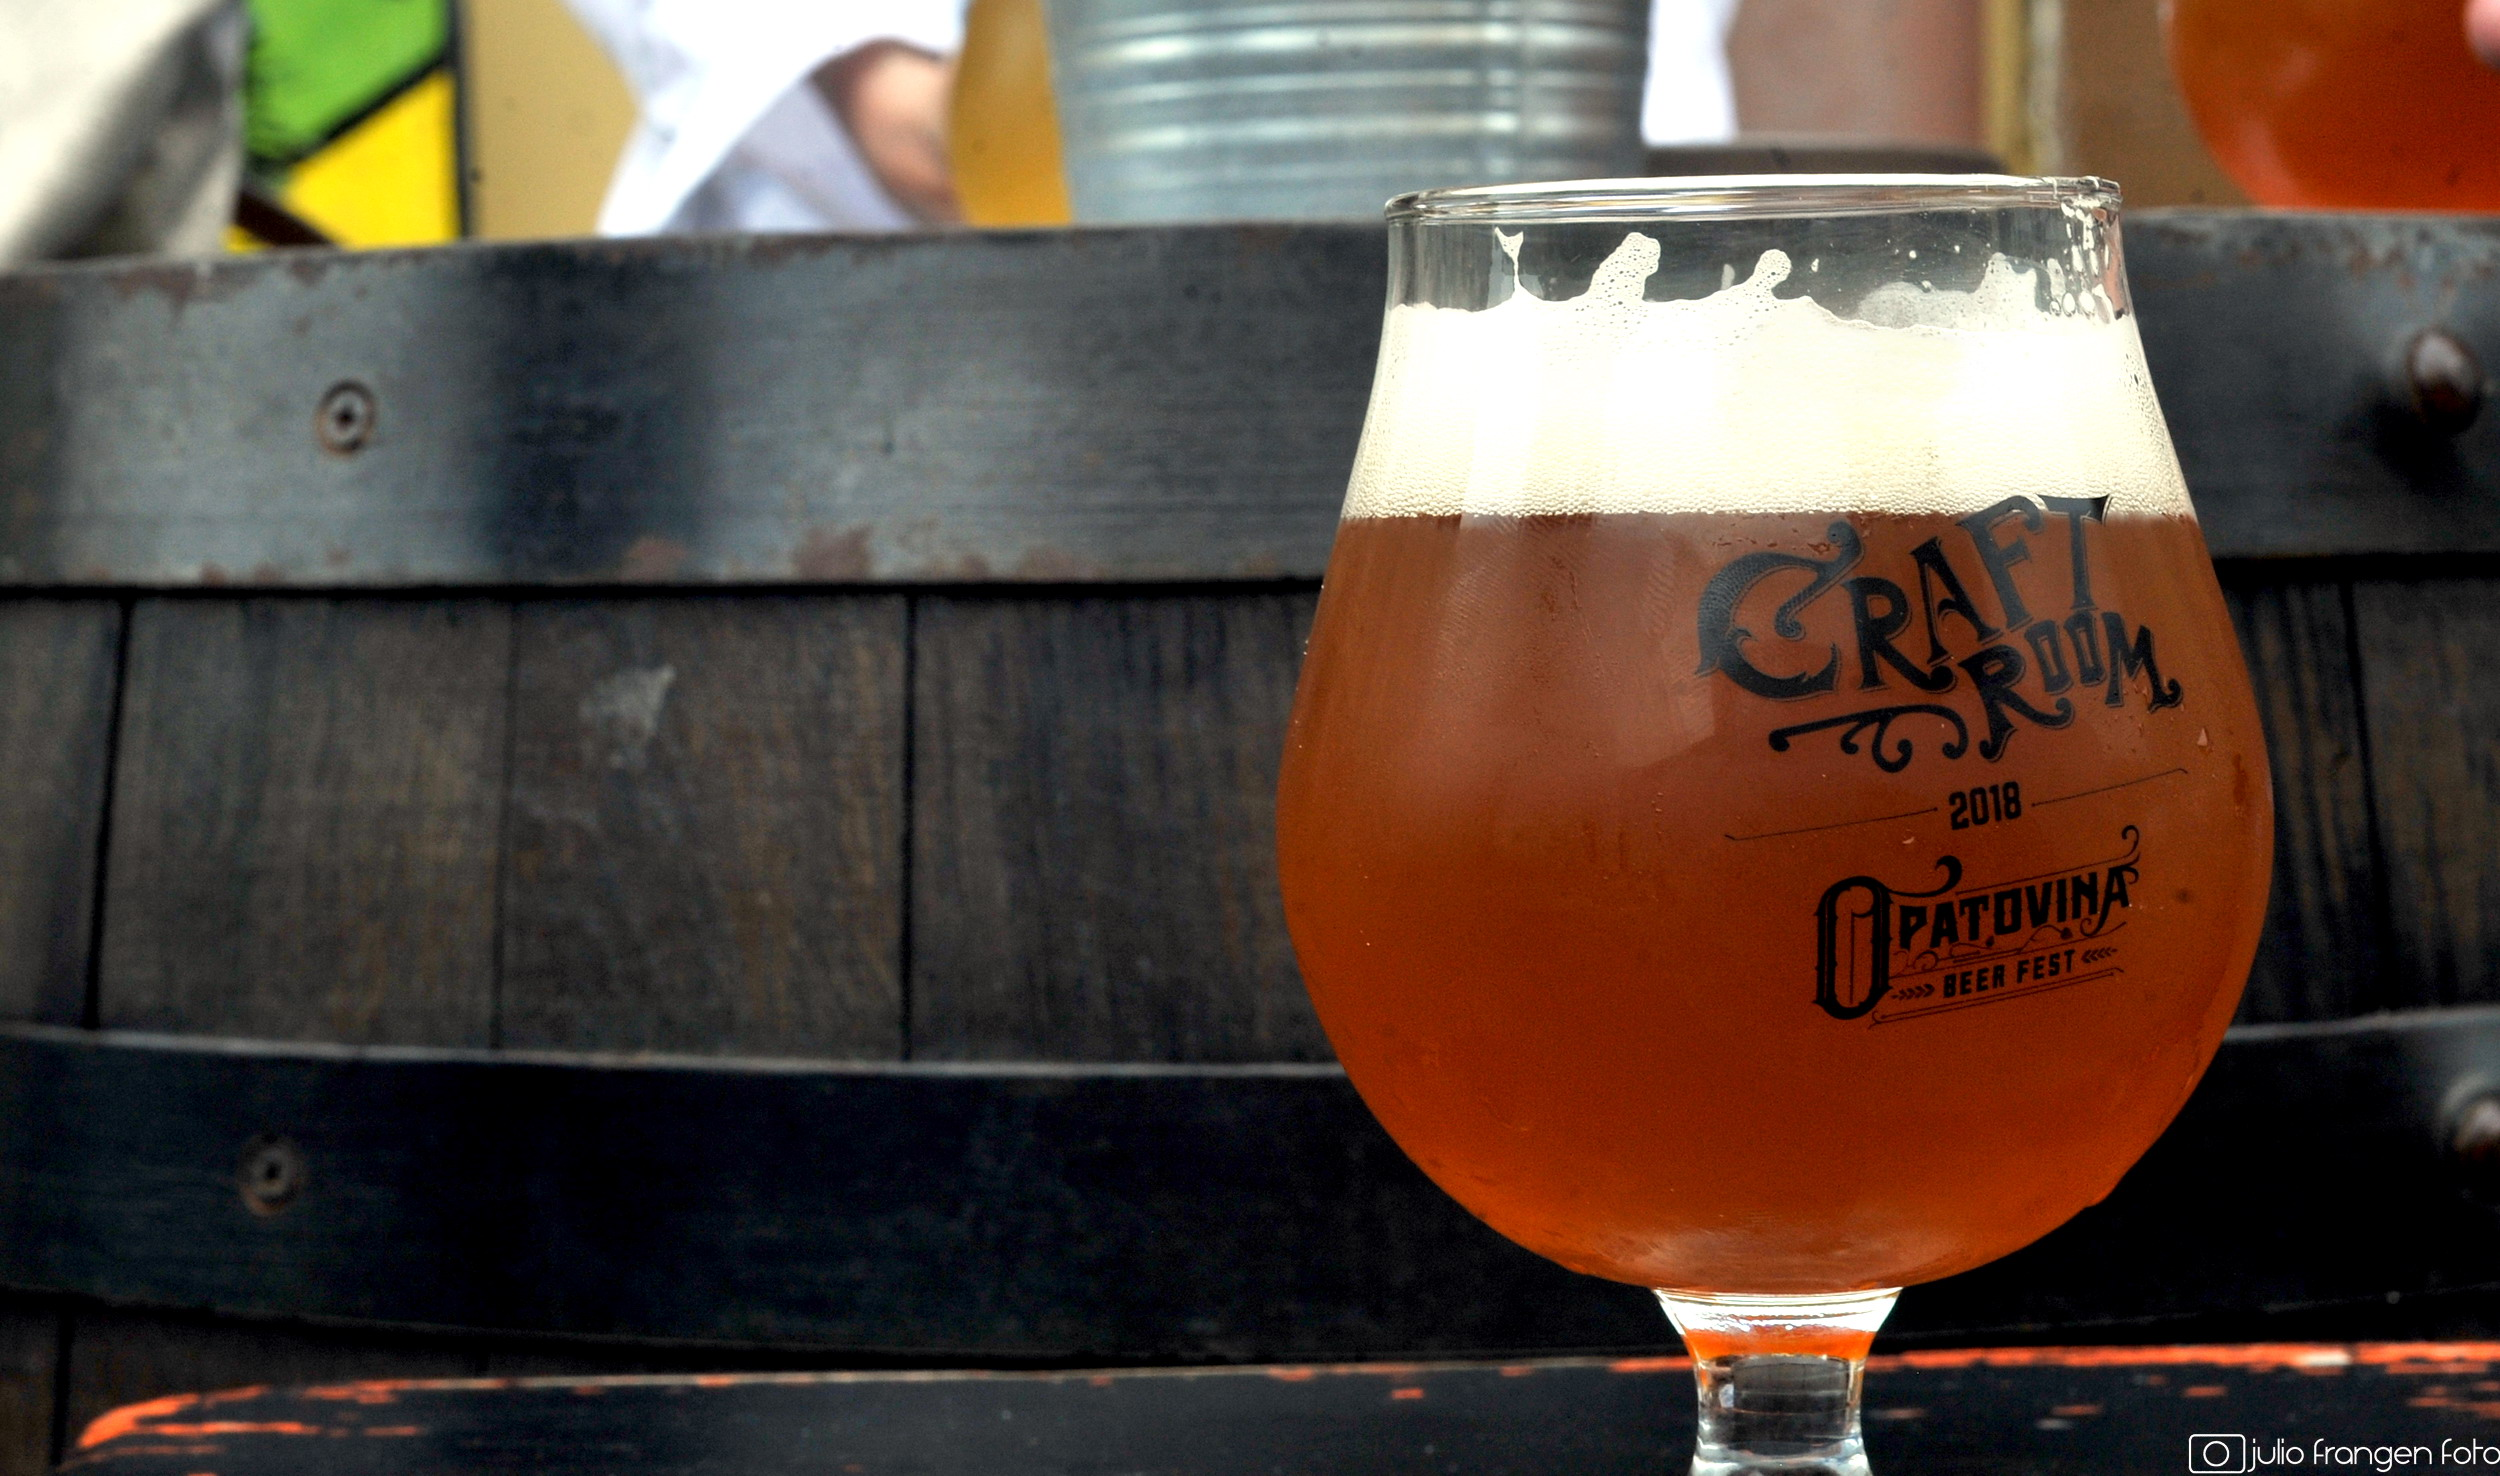 Opatovina – The beer street!